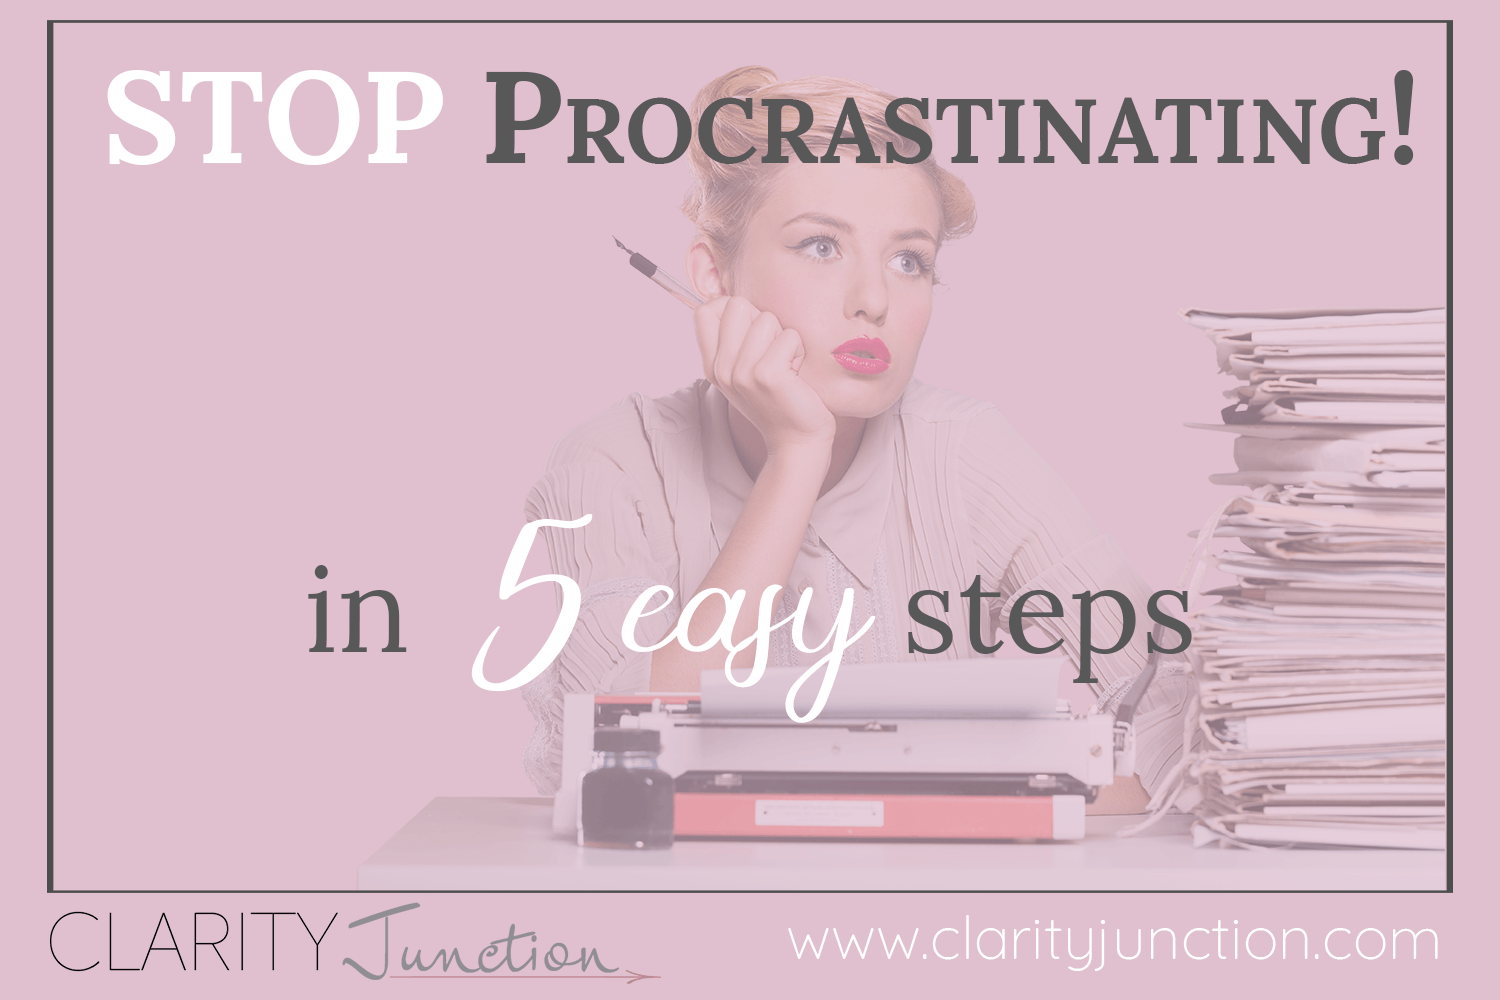 Don't let procrastination destroy your goals. Take these 5 easy steps to stay on track.